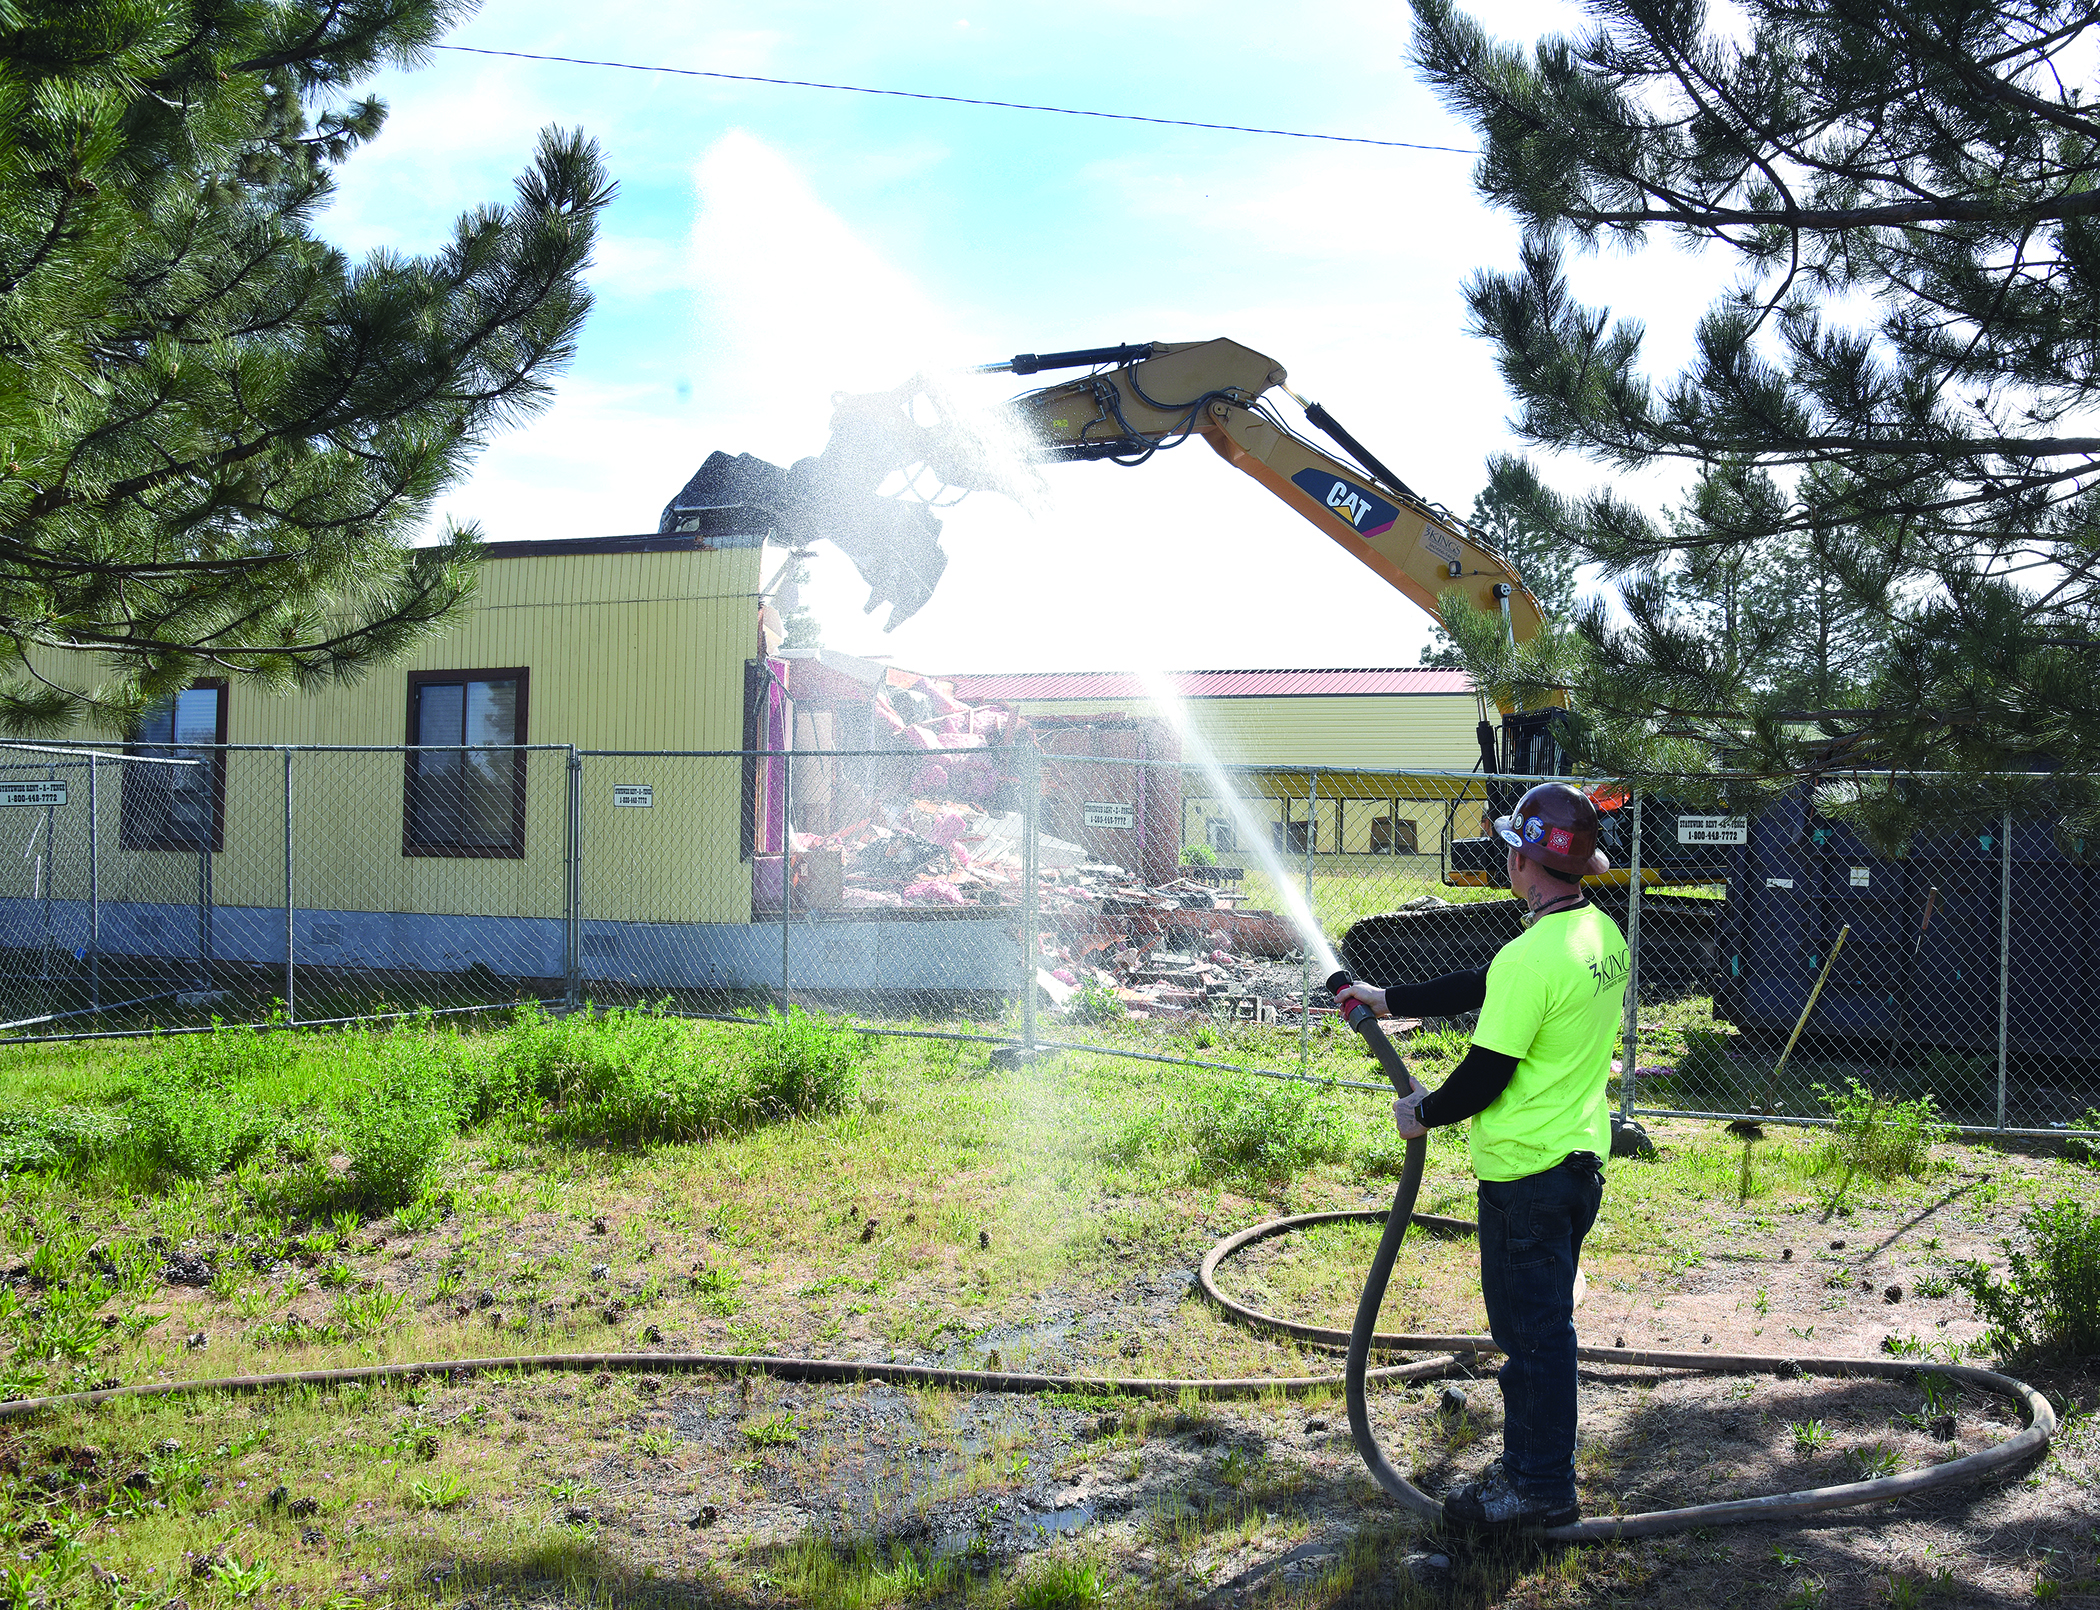 Wes Leers of Portland, who works for 3 Kings Environmental from Battle Ground, Washington, sprays water on the former accounting office for Yellowhawk Tribal Health Center. That building and several more, including the old clinic and Cay-Uma-Wa Education facility, are being razed over the next eight weeks. That will leave the July Grounds mostly empty except for the Community Center, the Longhouse and a couple of other smaller buildings.